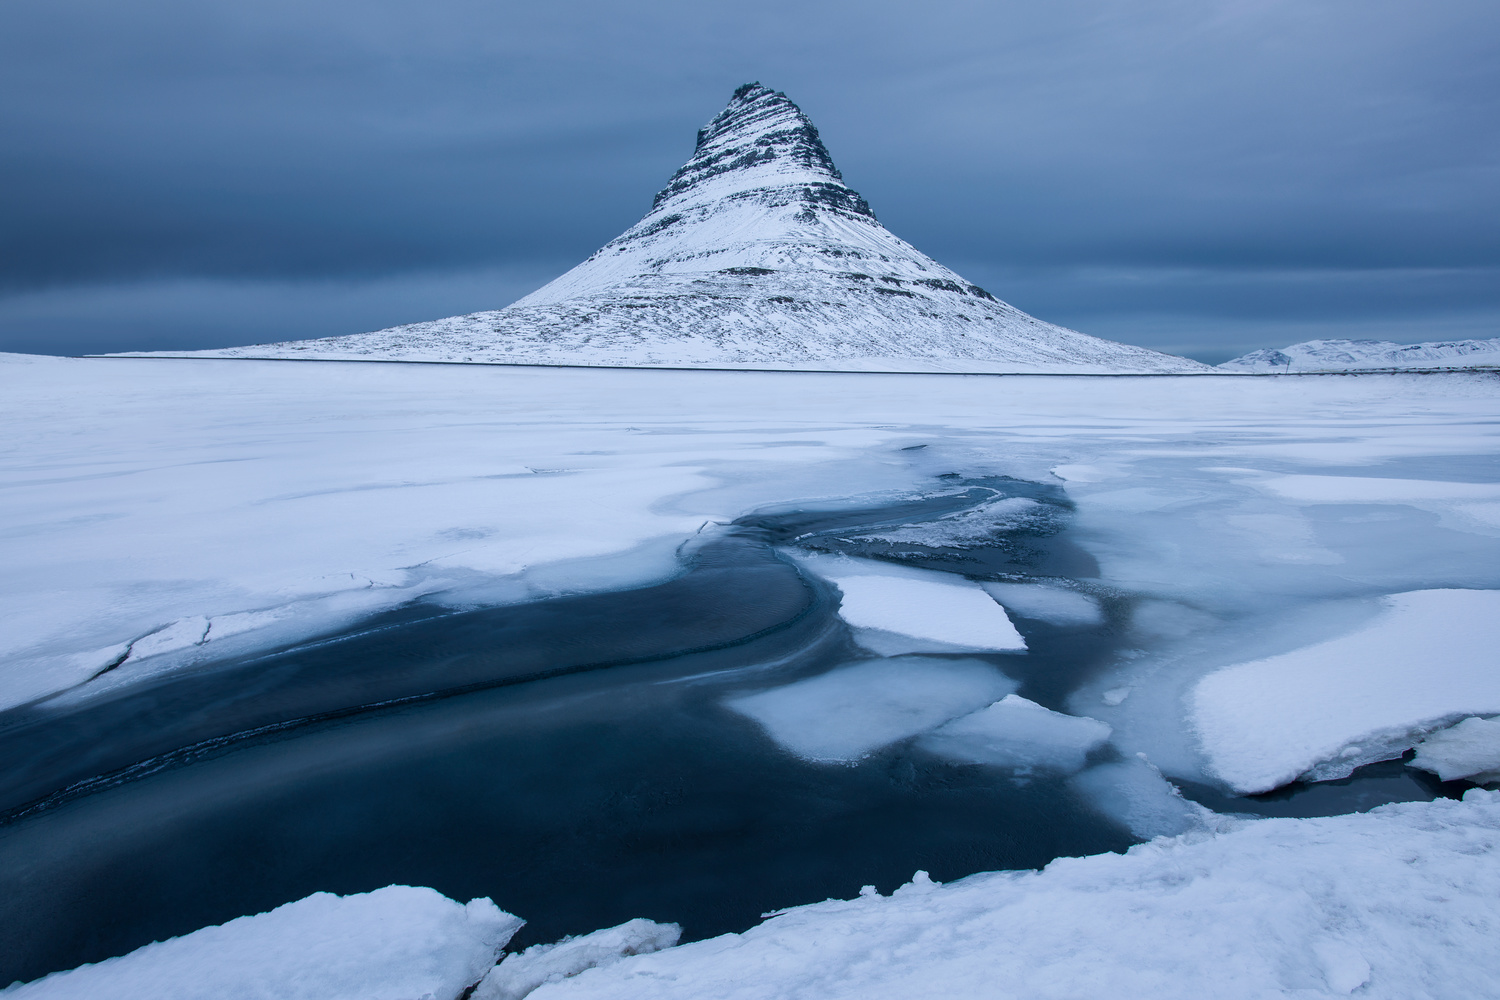 Iconic Iceland Mountain during Winter by Nick Souvall